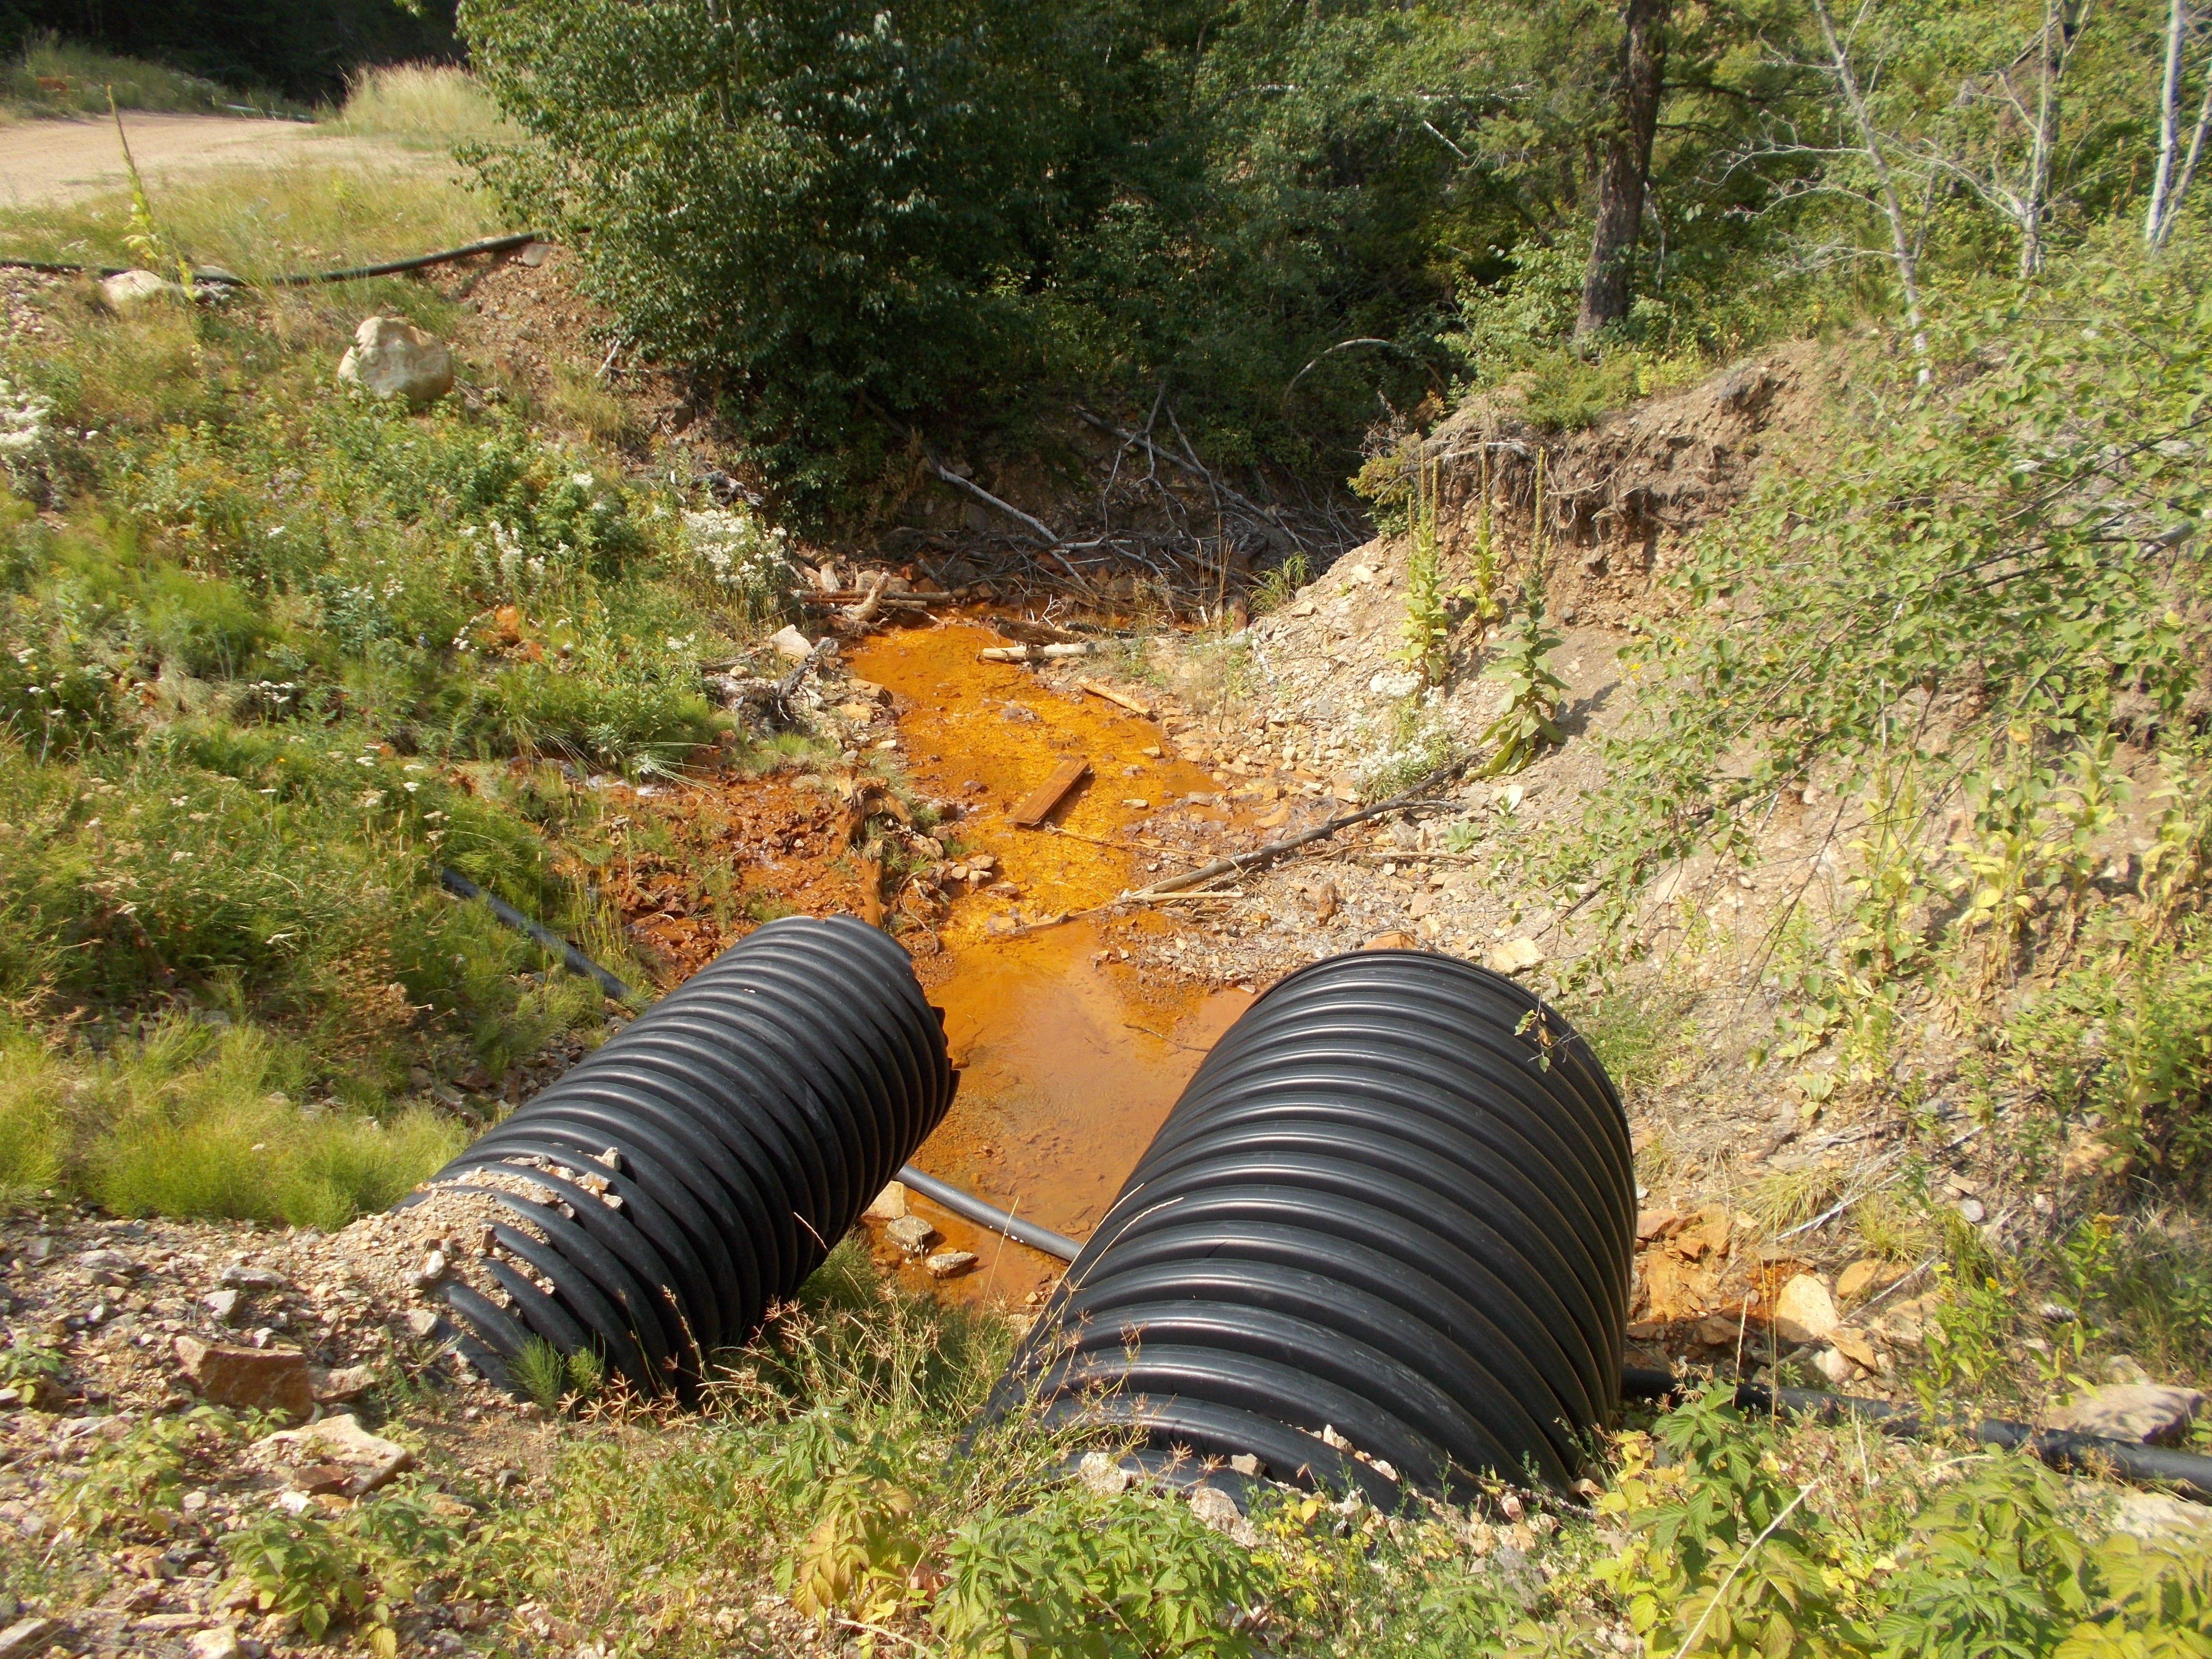 Polluted water treated at the Swift Gulch Water Treatment Plant in the Little Rocky Mountains is discharged into South Big Horn Creek.